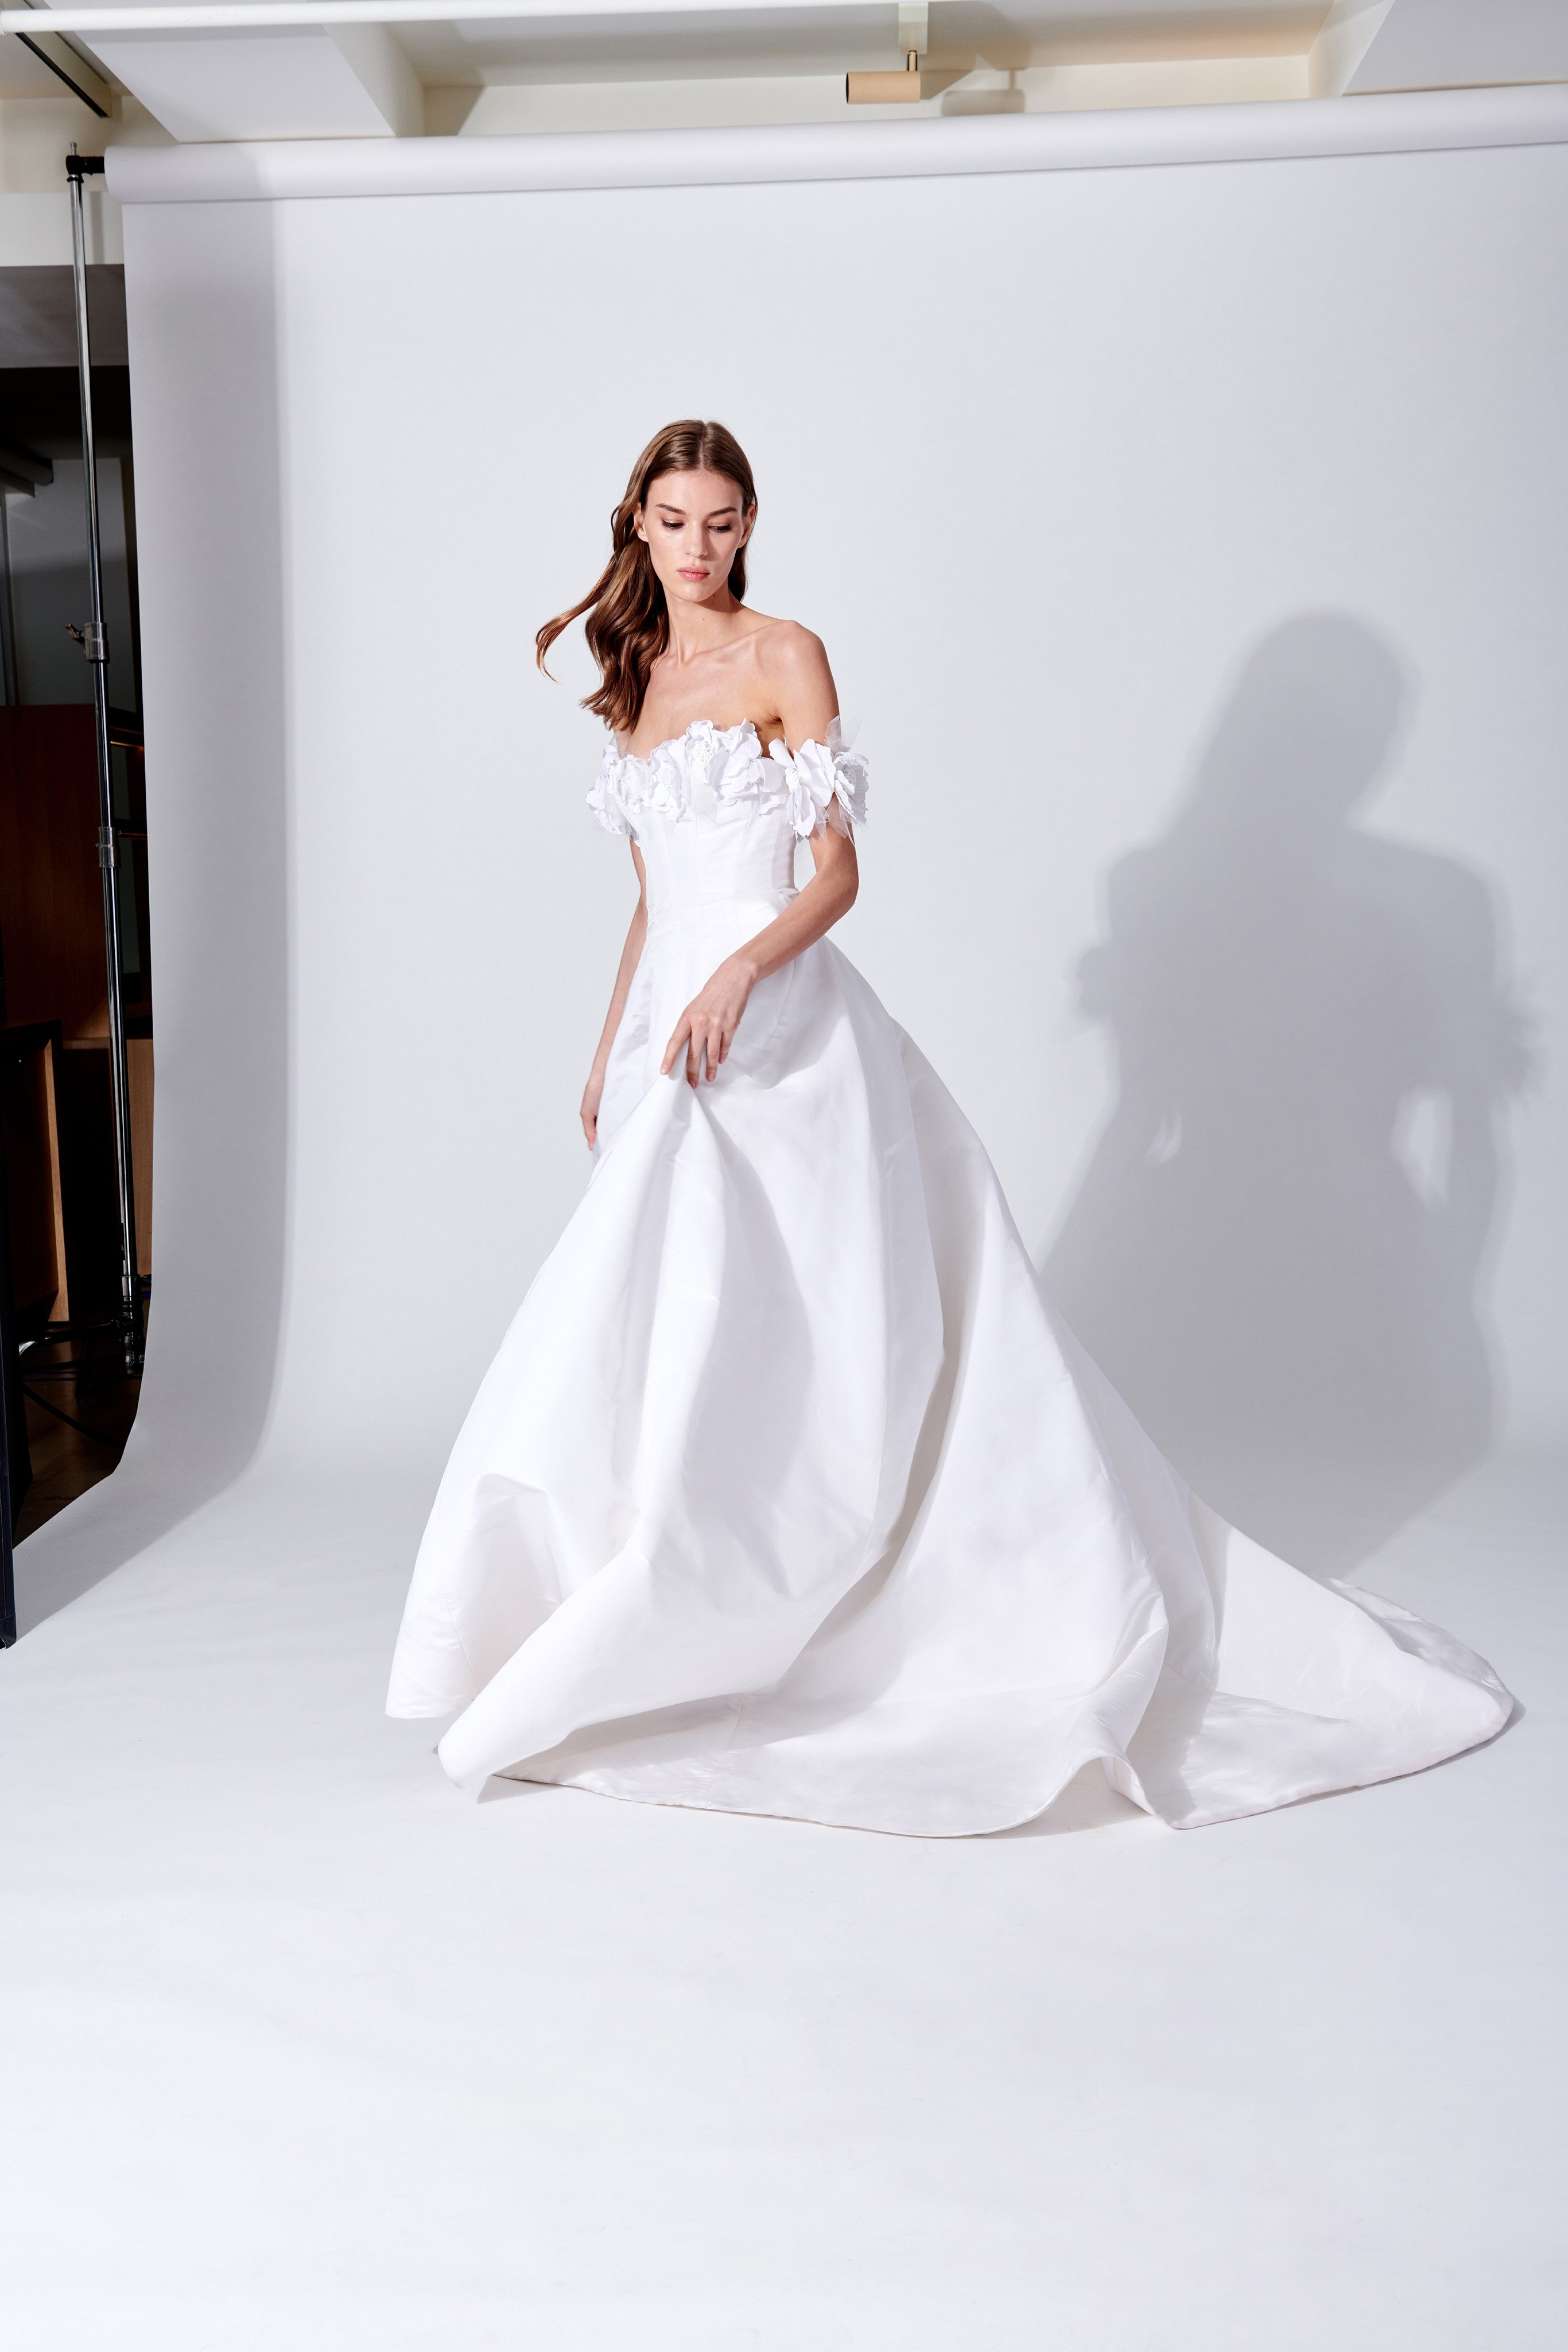 fba37190c14fc 4 lavish bridal gown design trends that will raise eyebrows on your ...